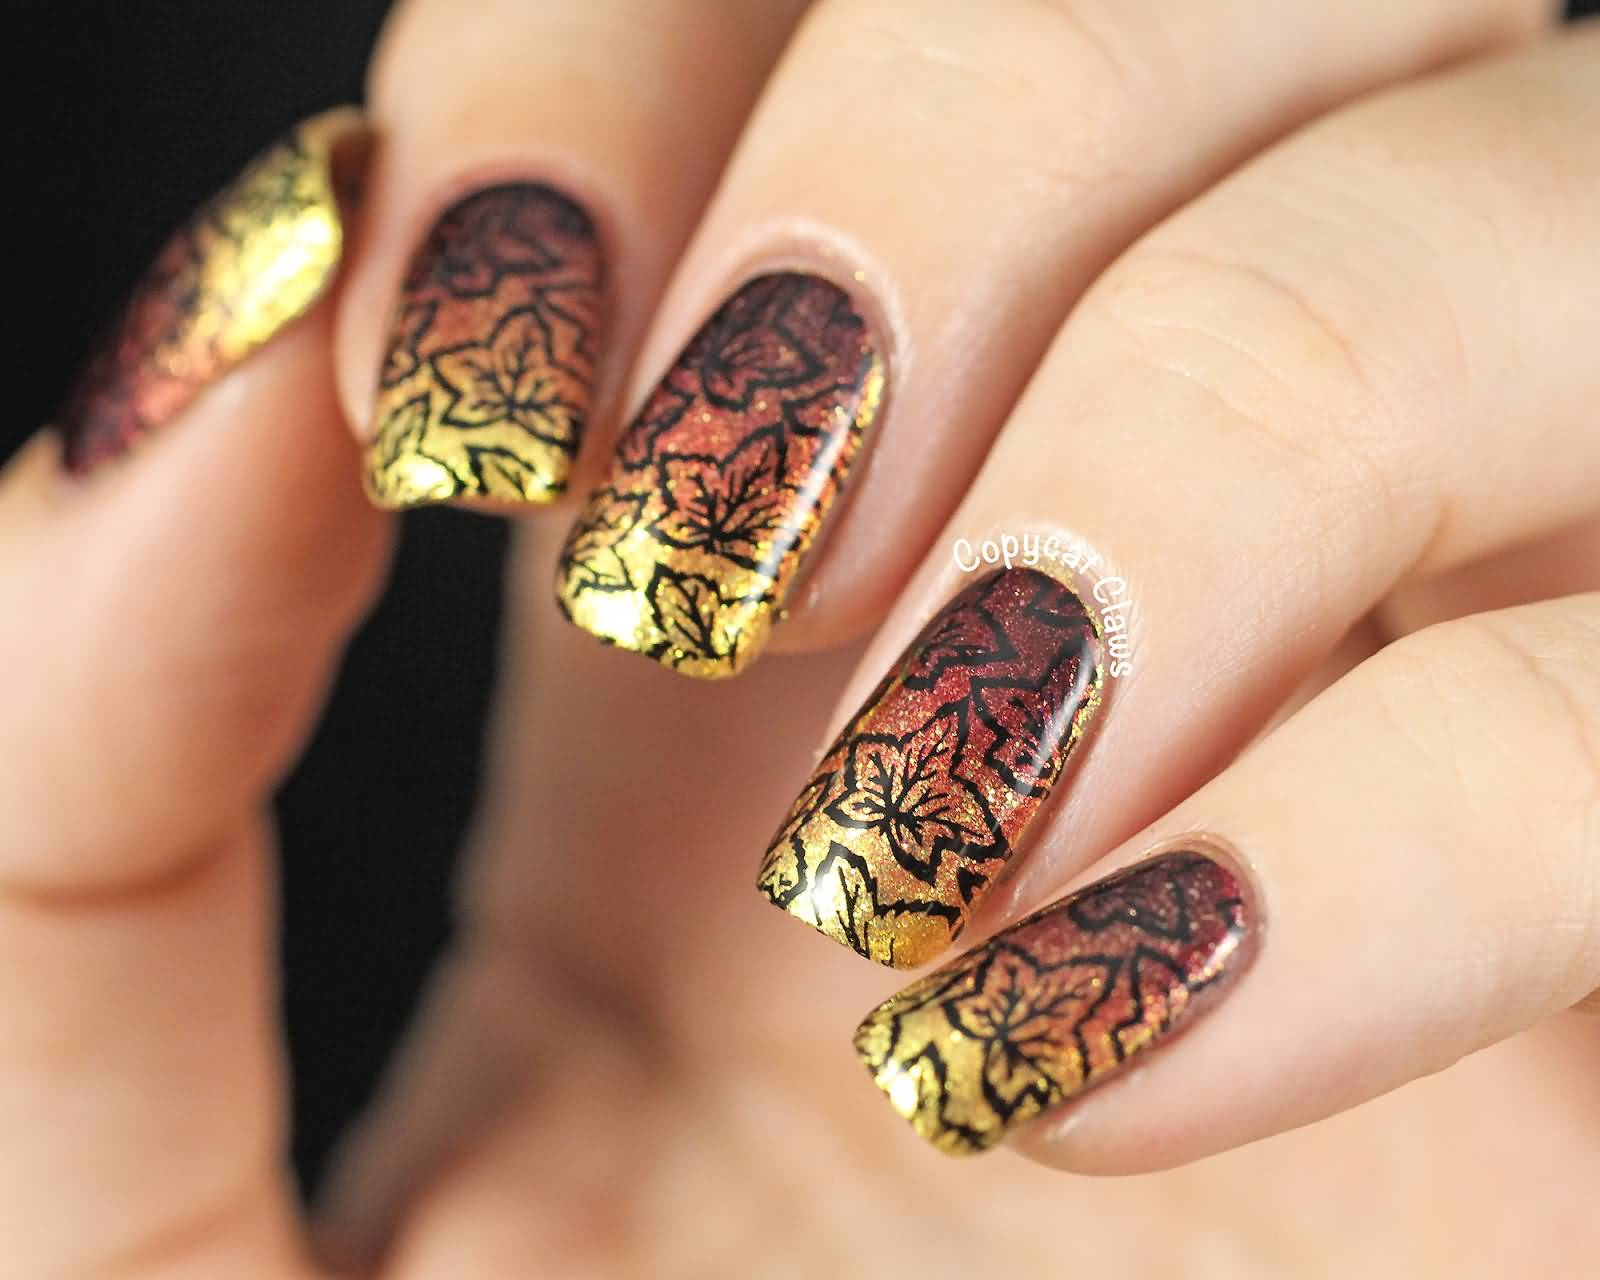 50 golden autumn nails nail design ideaz gold and brown with black autumn leaves nails prinsesfo Image collections